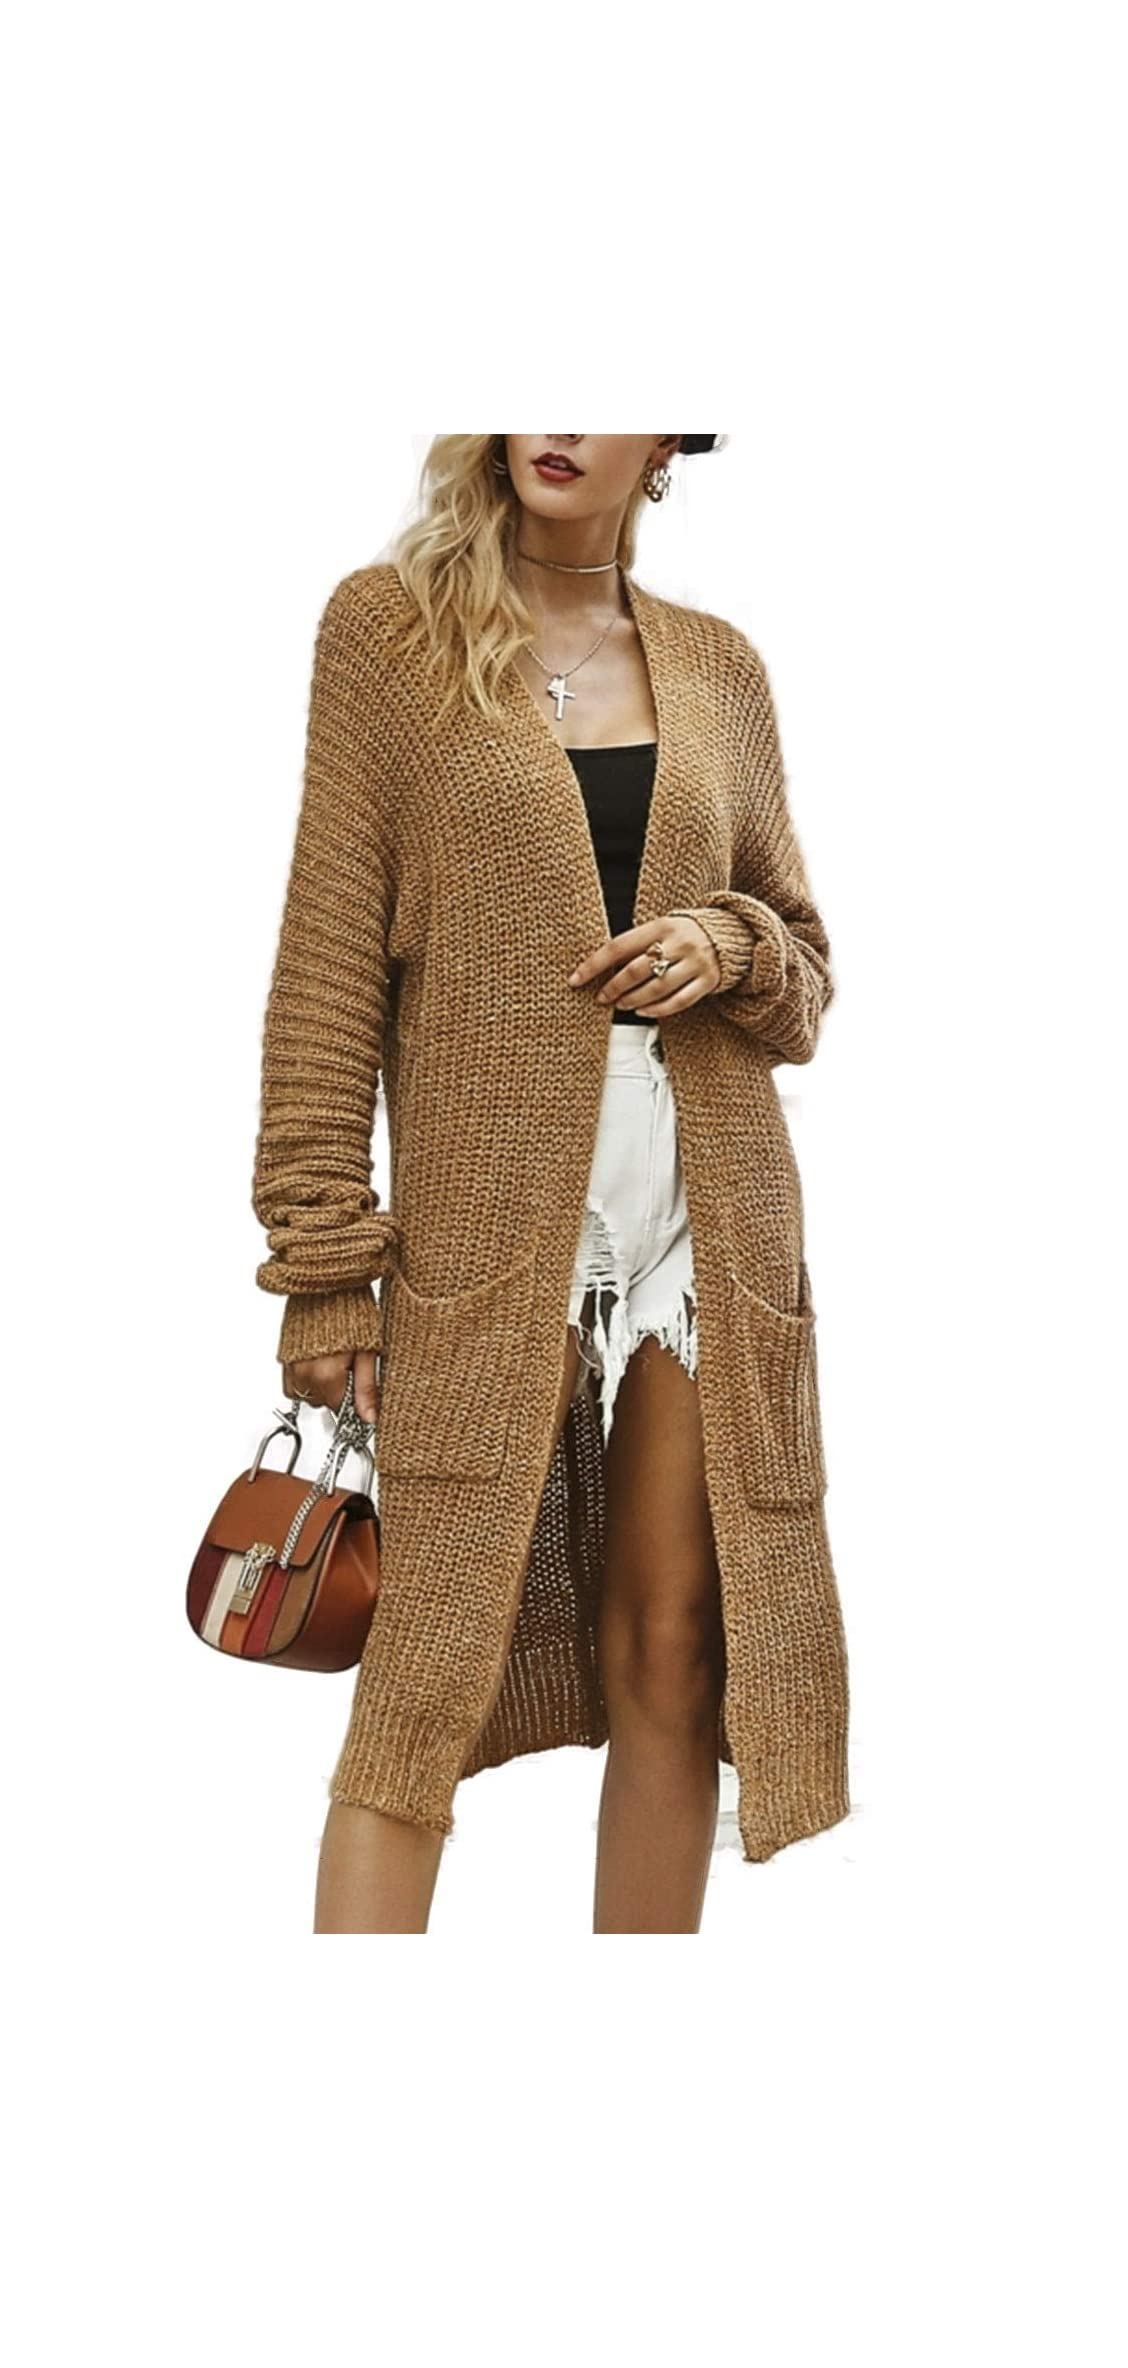 Simplee Women's Casual Open Front Long Sleeve Knit Cardigan Coat